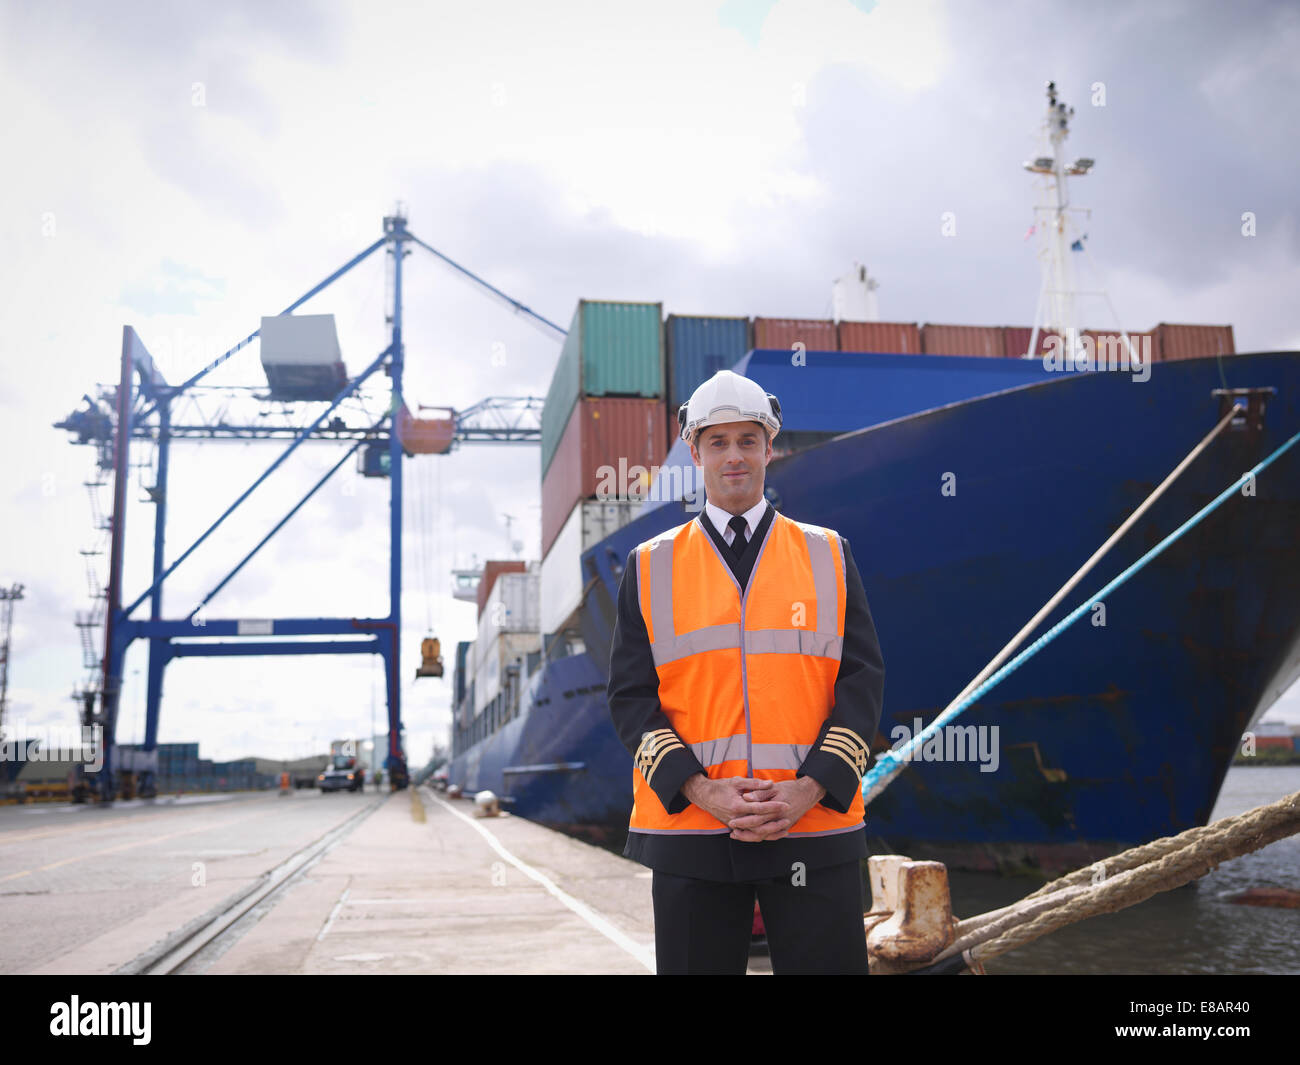 Portrait of ship's captain standing in front of container ship - Stock Image